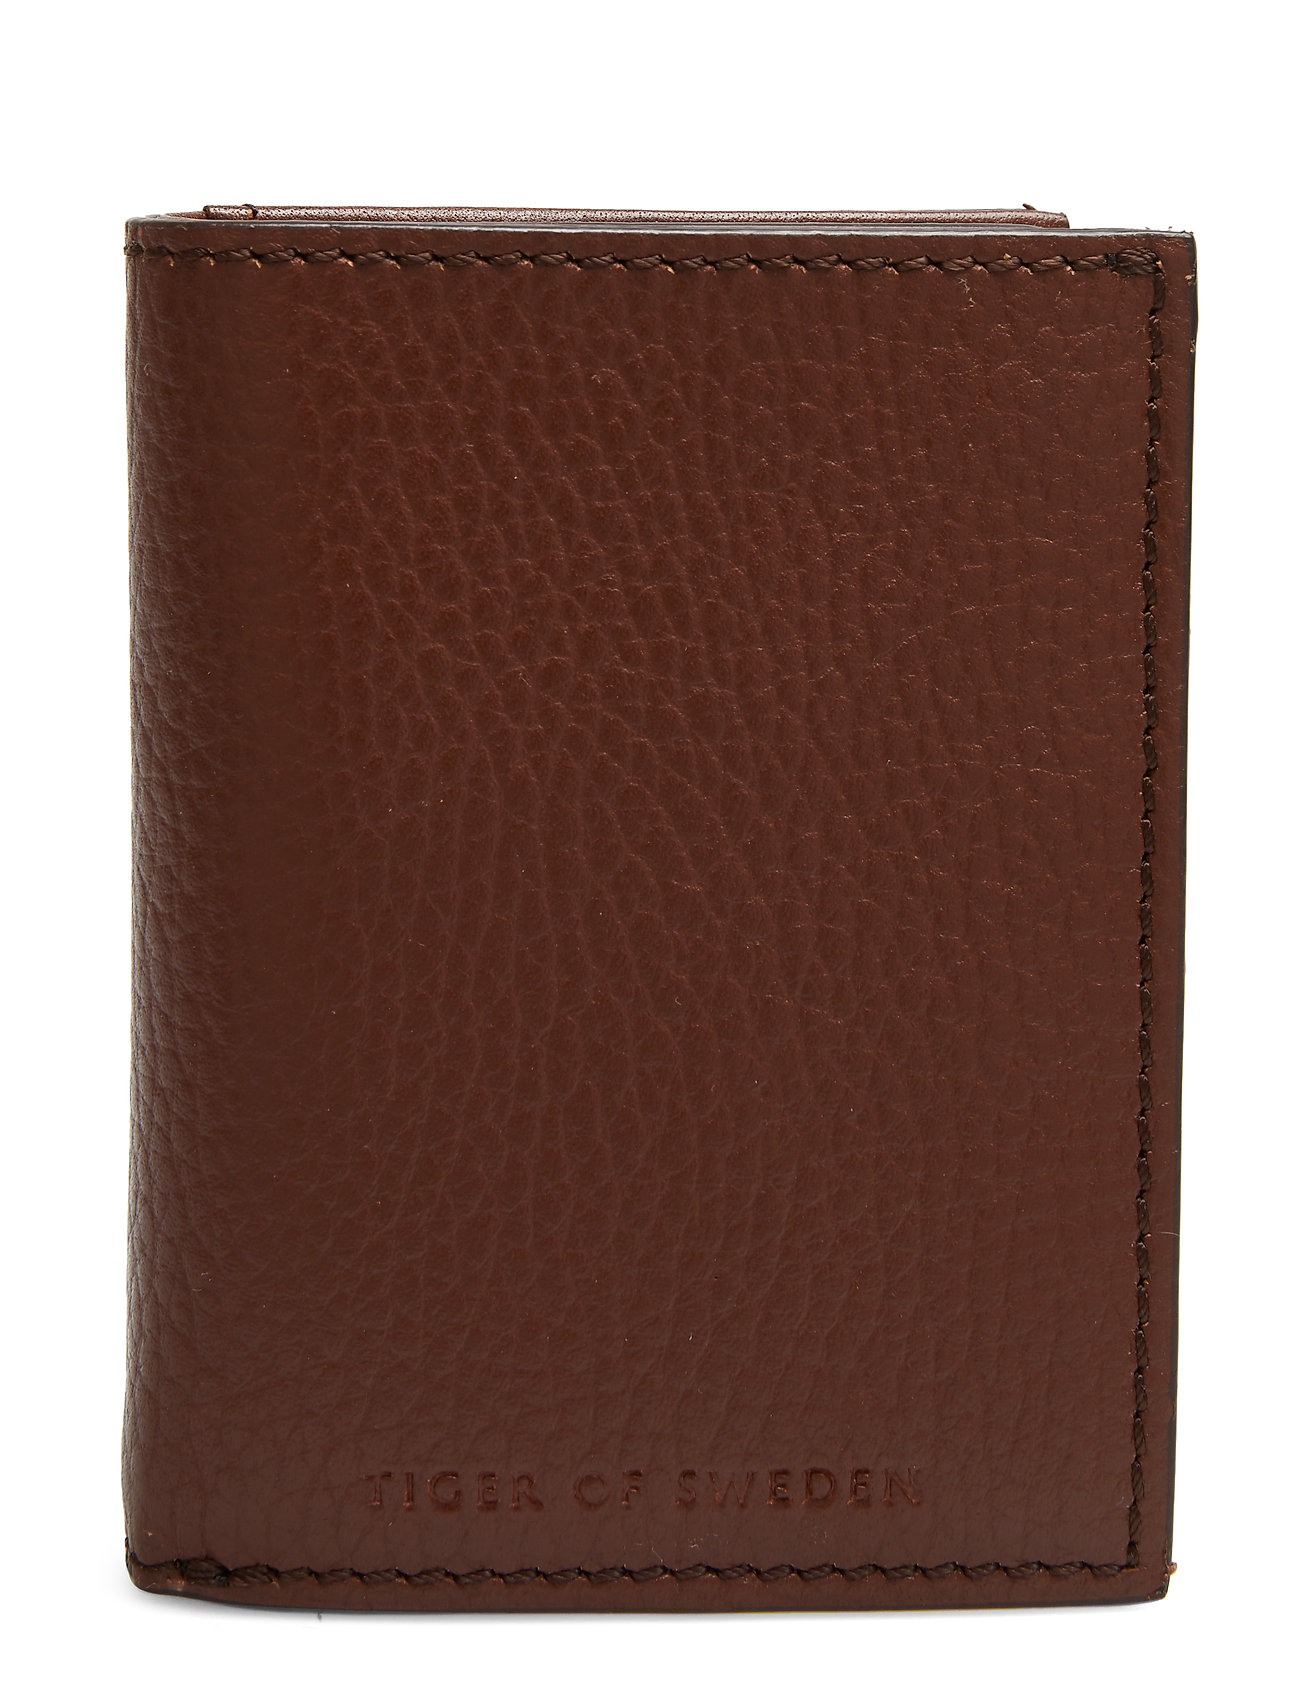 Whitan Accessories Wallets Classic Wallets Brun Tiger Of Sweden